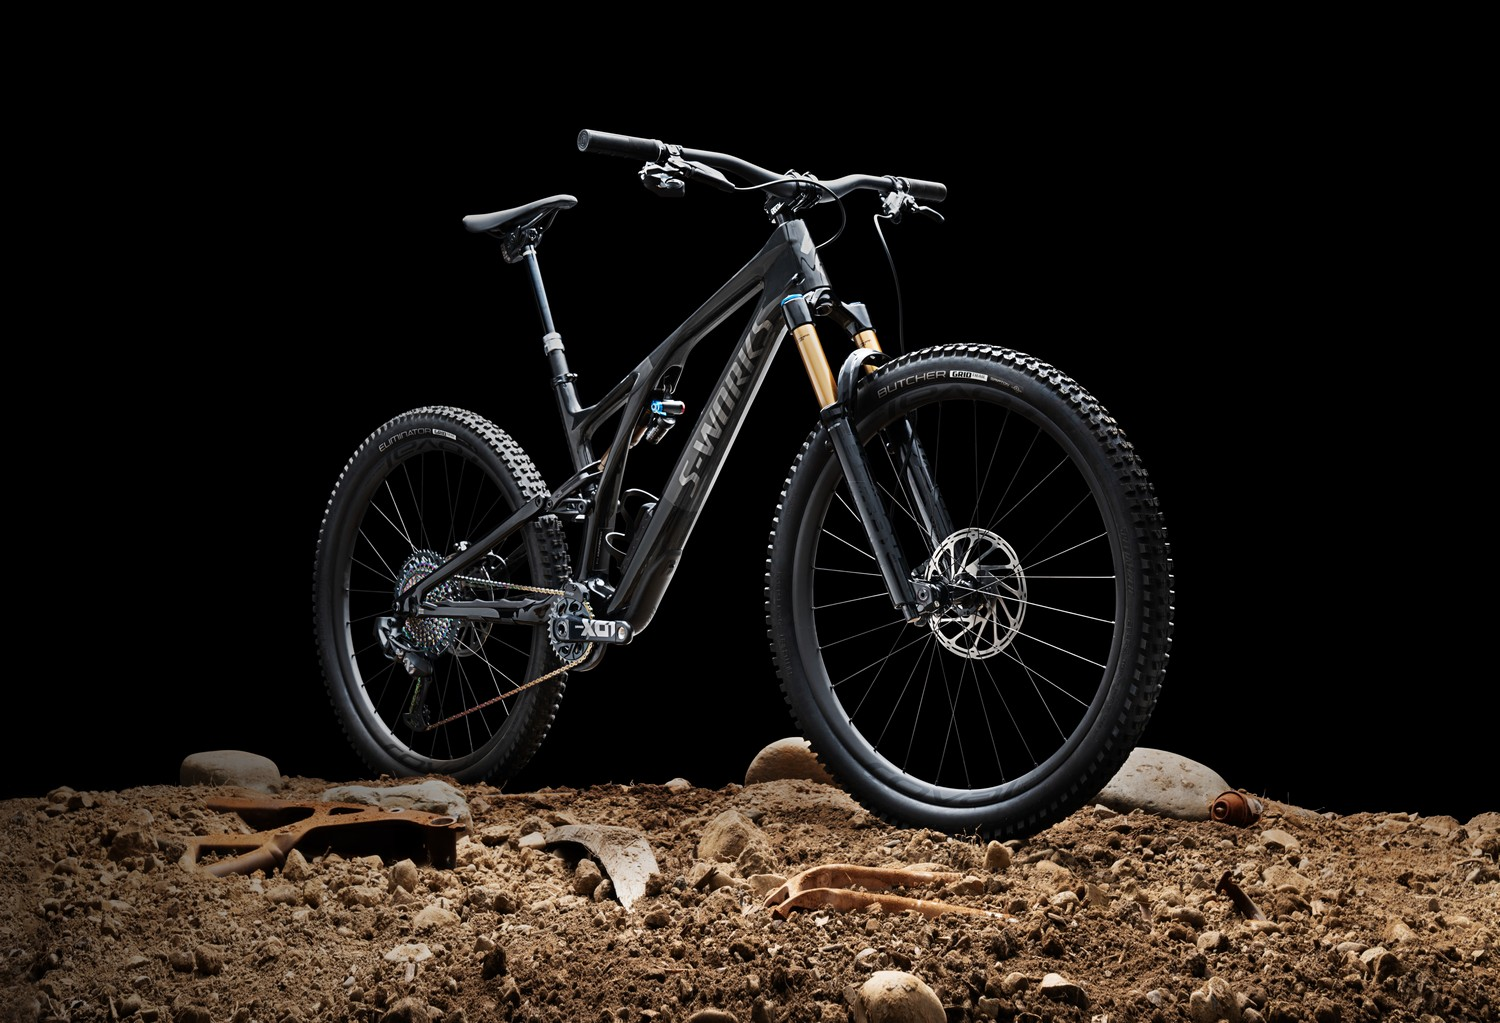 Specialized Stumpjumper Evo - lifestyle